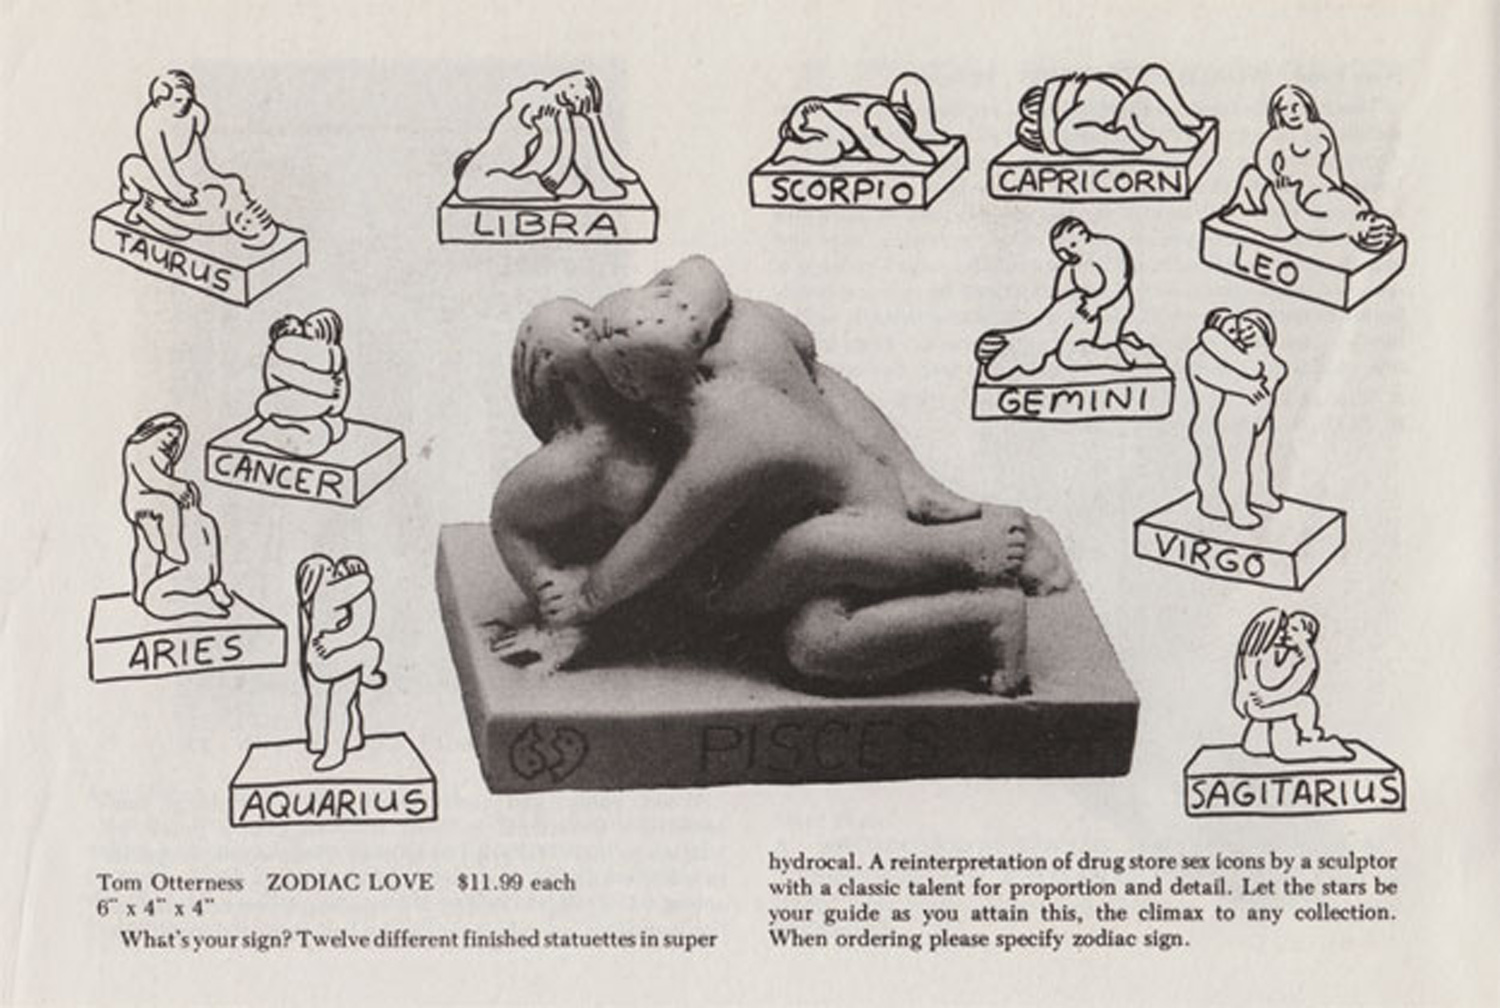 """Tom Otterness, Zodiac Love, $11.99 each"" from Art Direct catalogue, 1982"